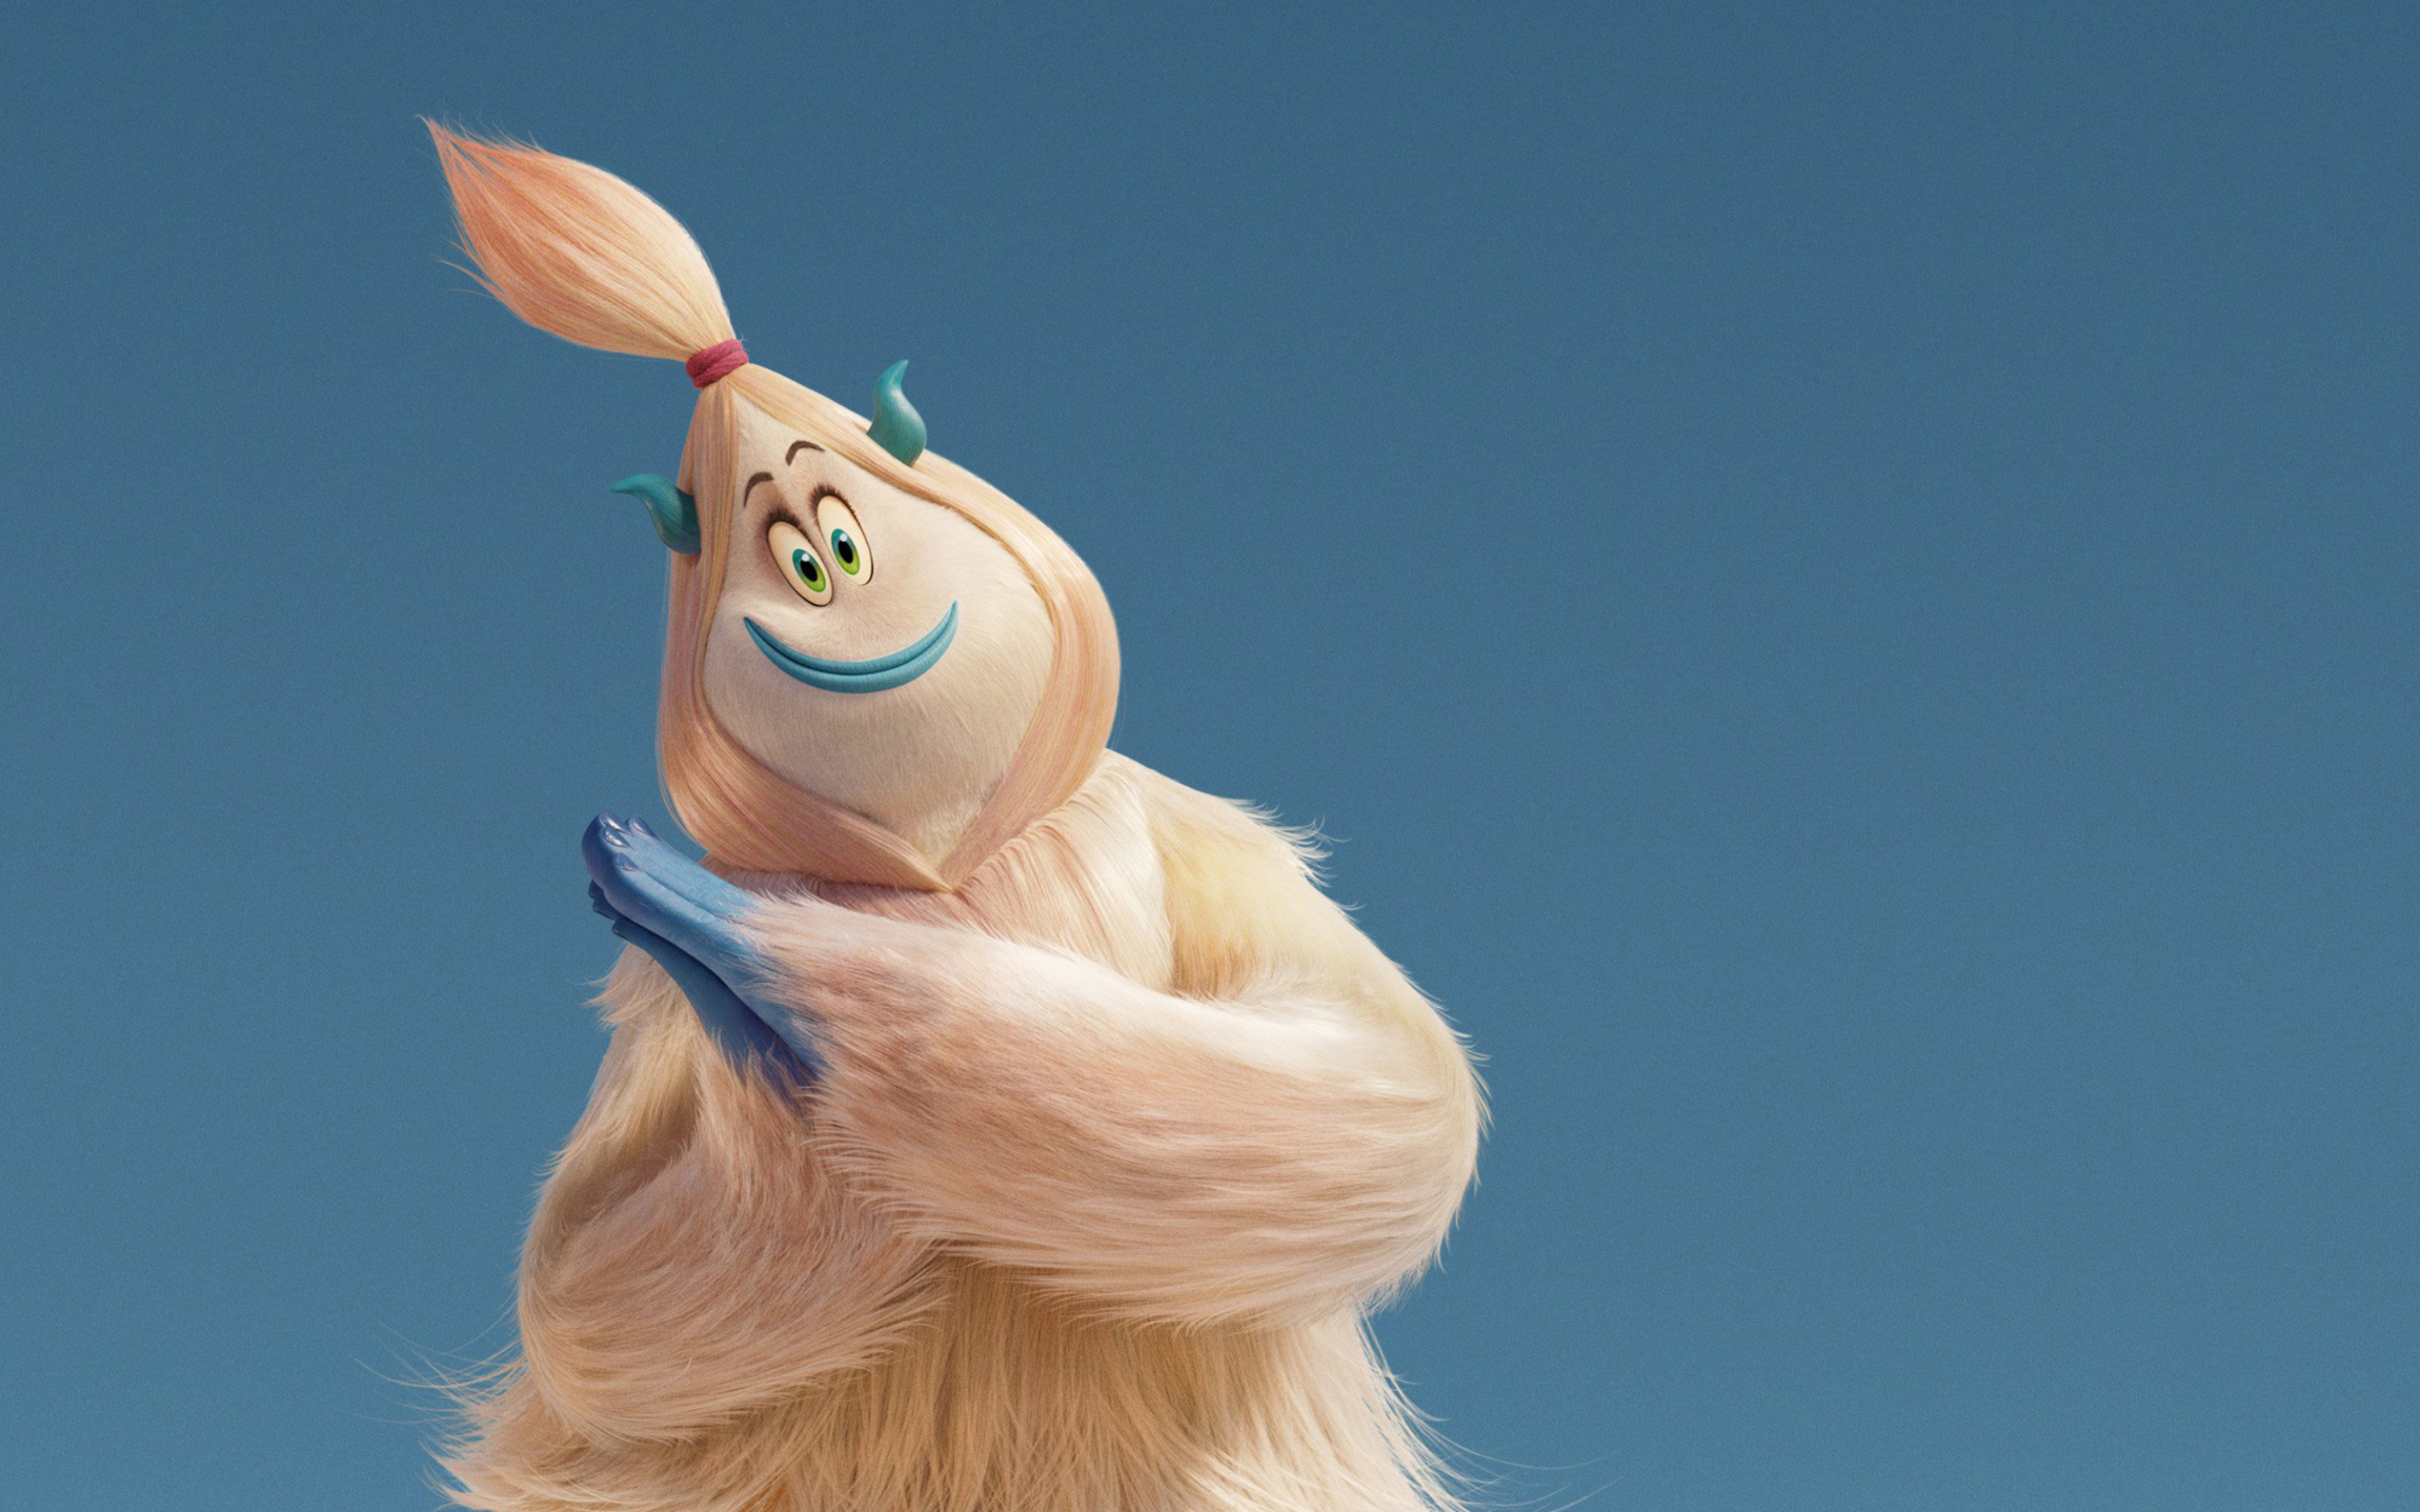 3000x1875 Kolka In Smallfoot 2018 3000x1875 Resolution Wallpaper Hd Movies 4k Wallpapers Images Photos And Background